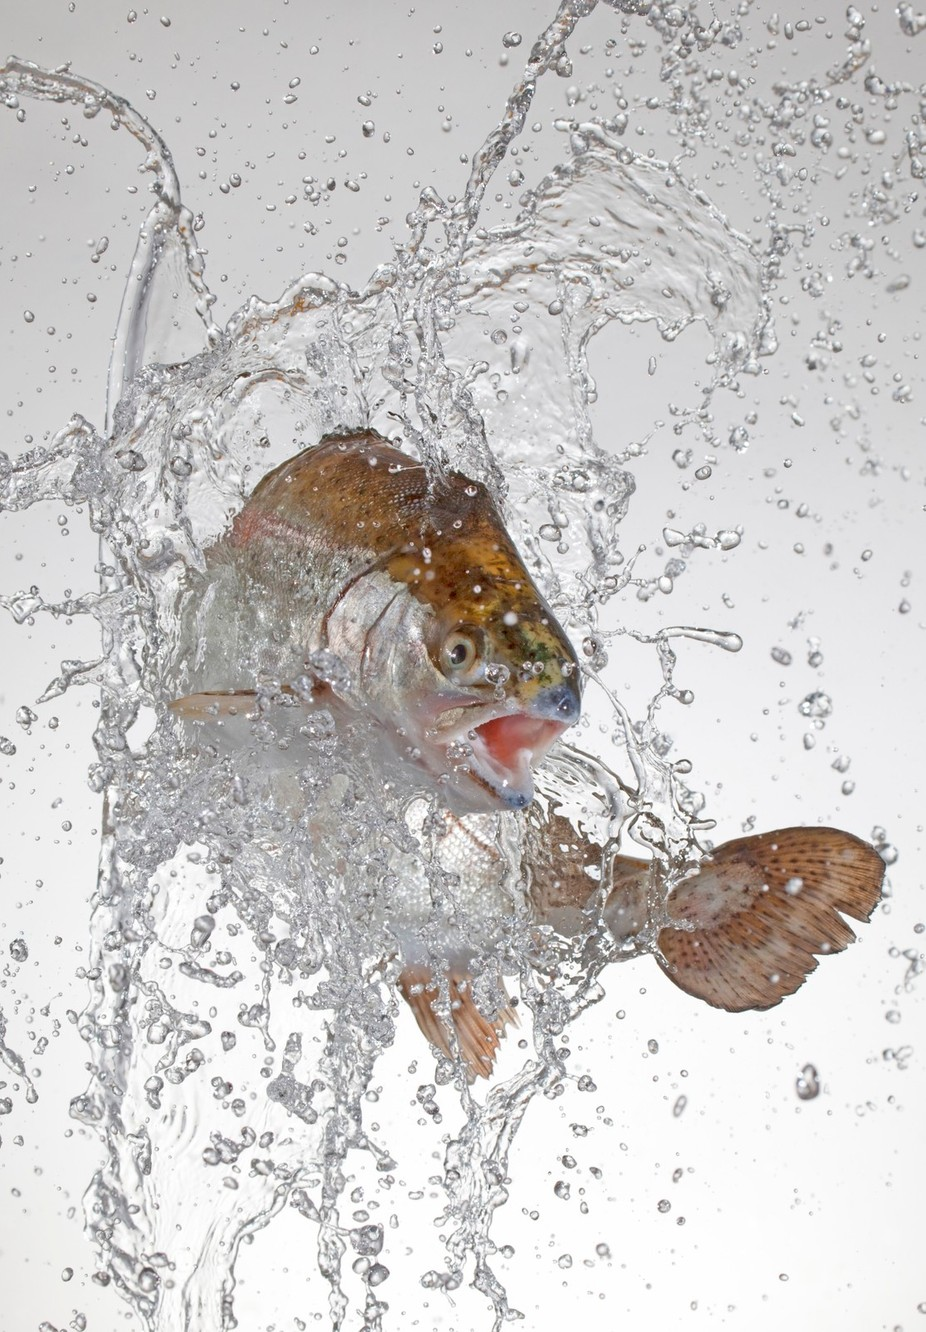 Rainbow trout by tomviggars - Experimental Photography Project